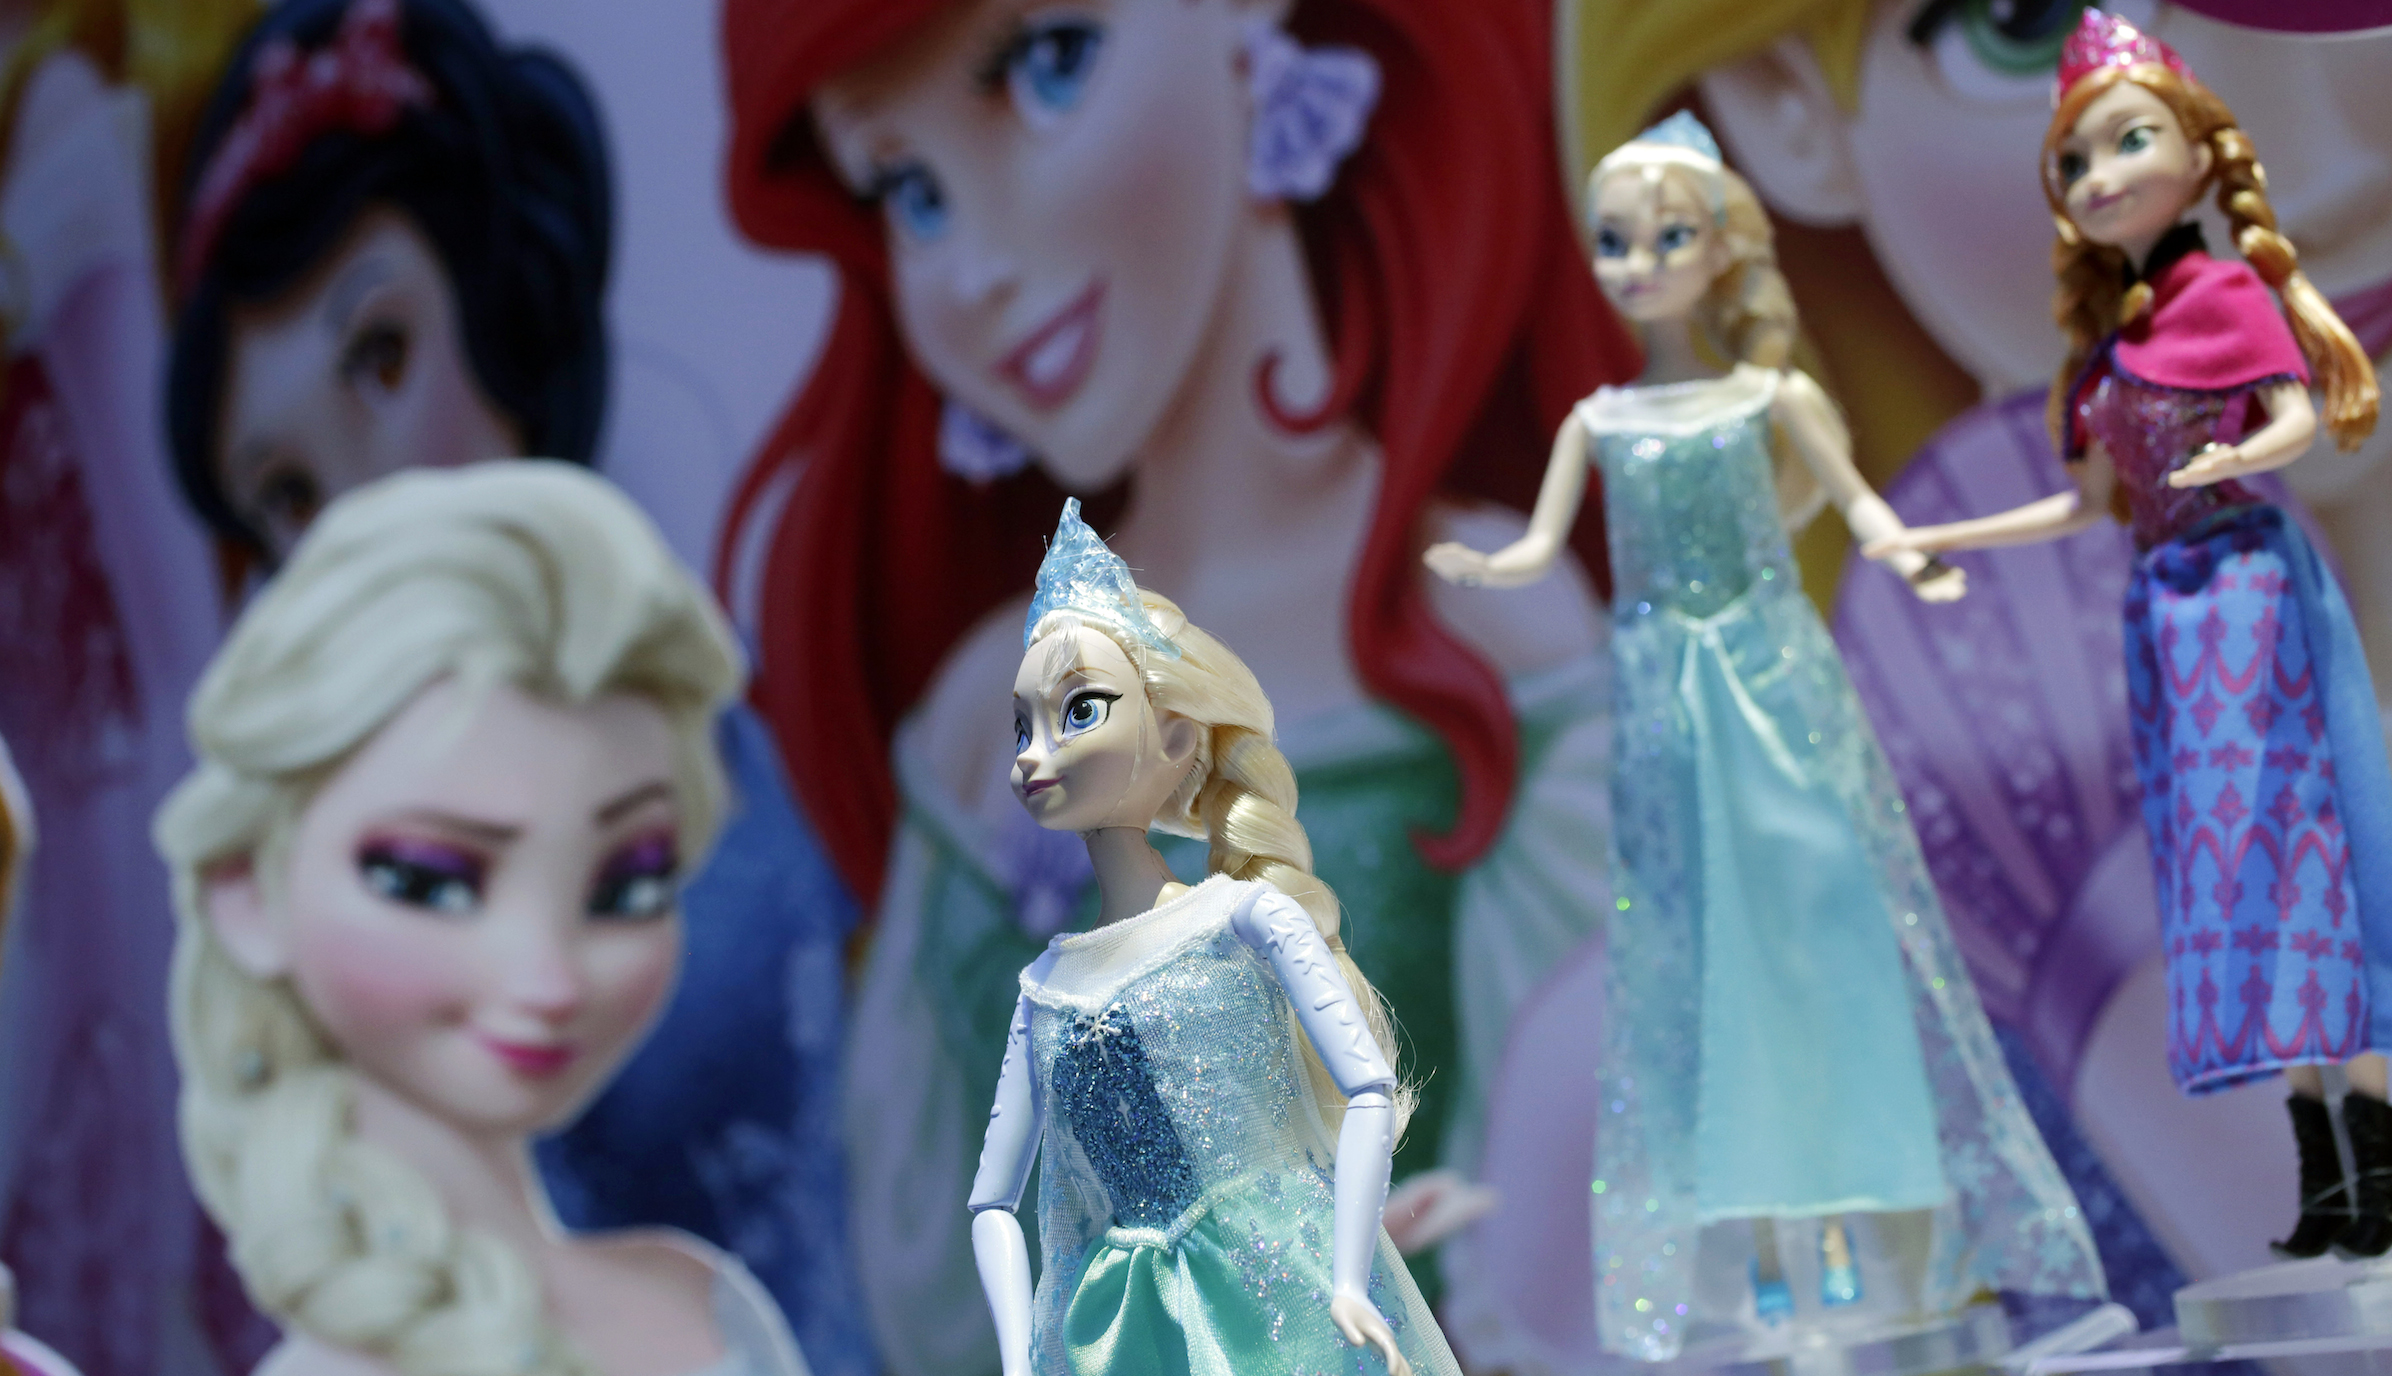 Disney Frozen Feature Fashion Dolls are displayed at the Mattel booth, Friday, Feb. 14, 2014 at the American International Toy Fair in New York. (AP Photo/Mark Lennihan)